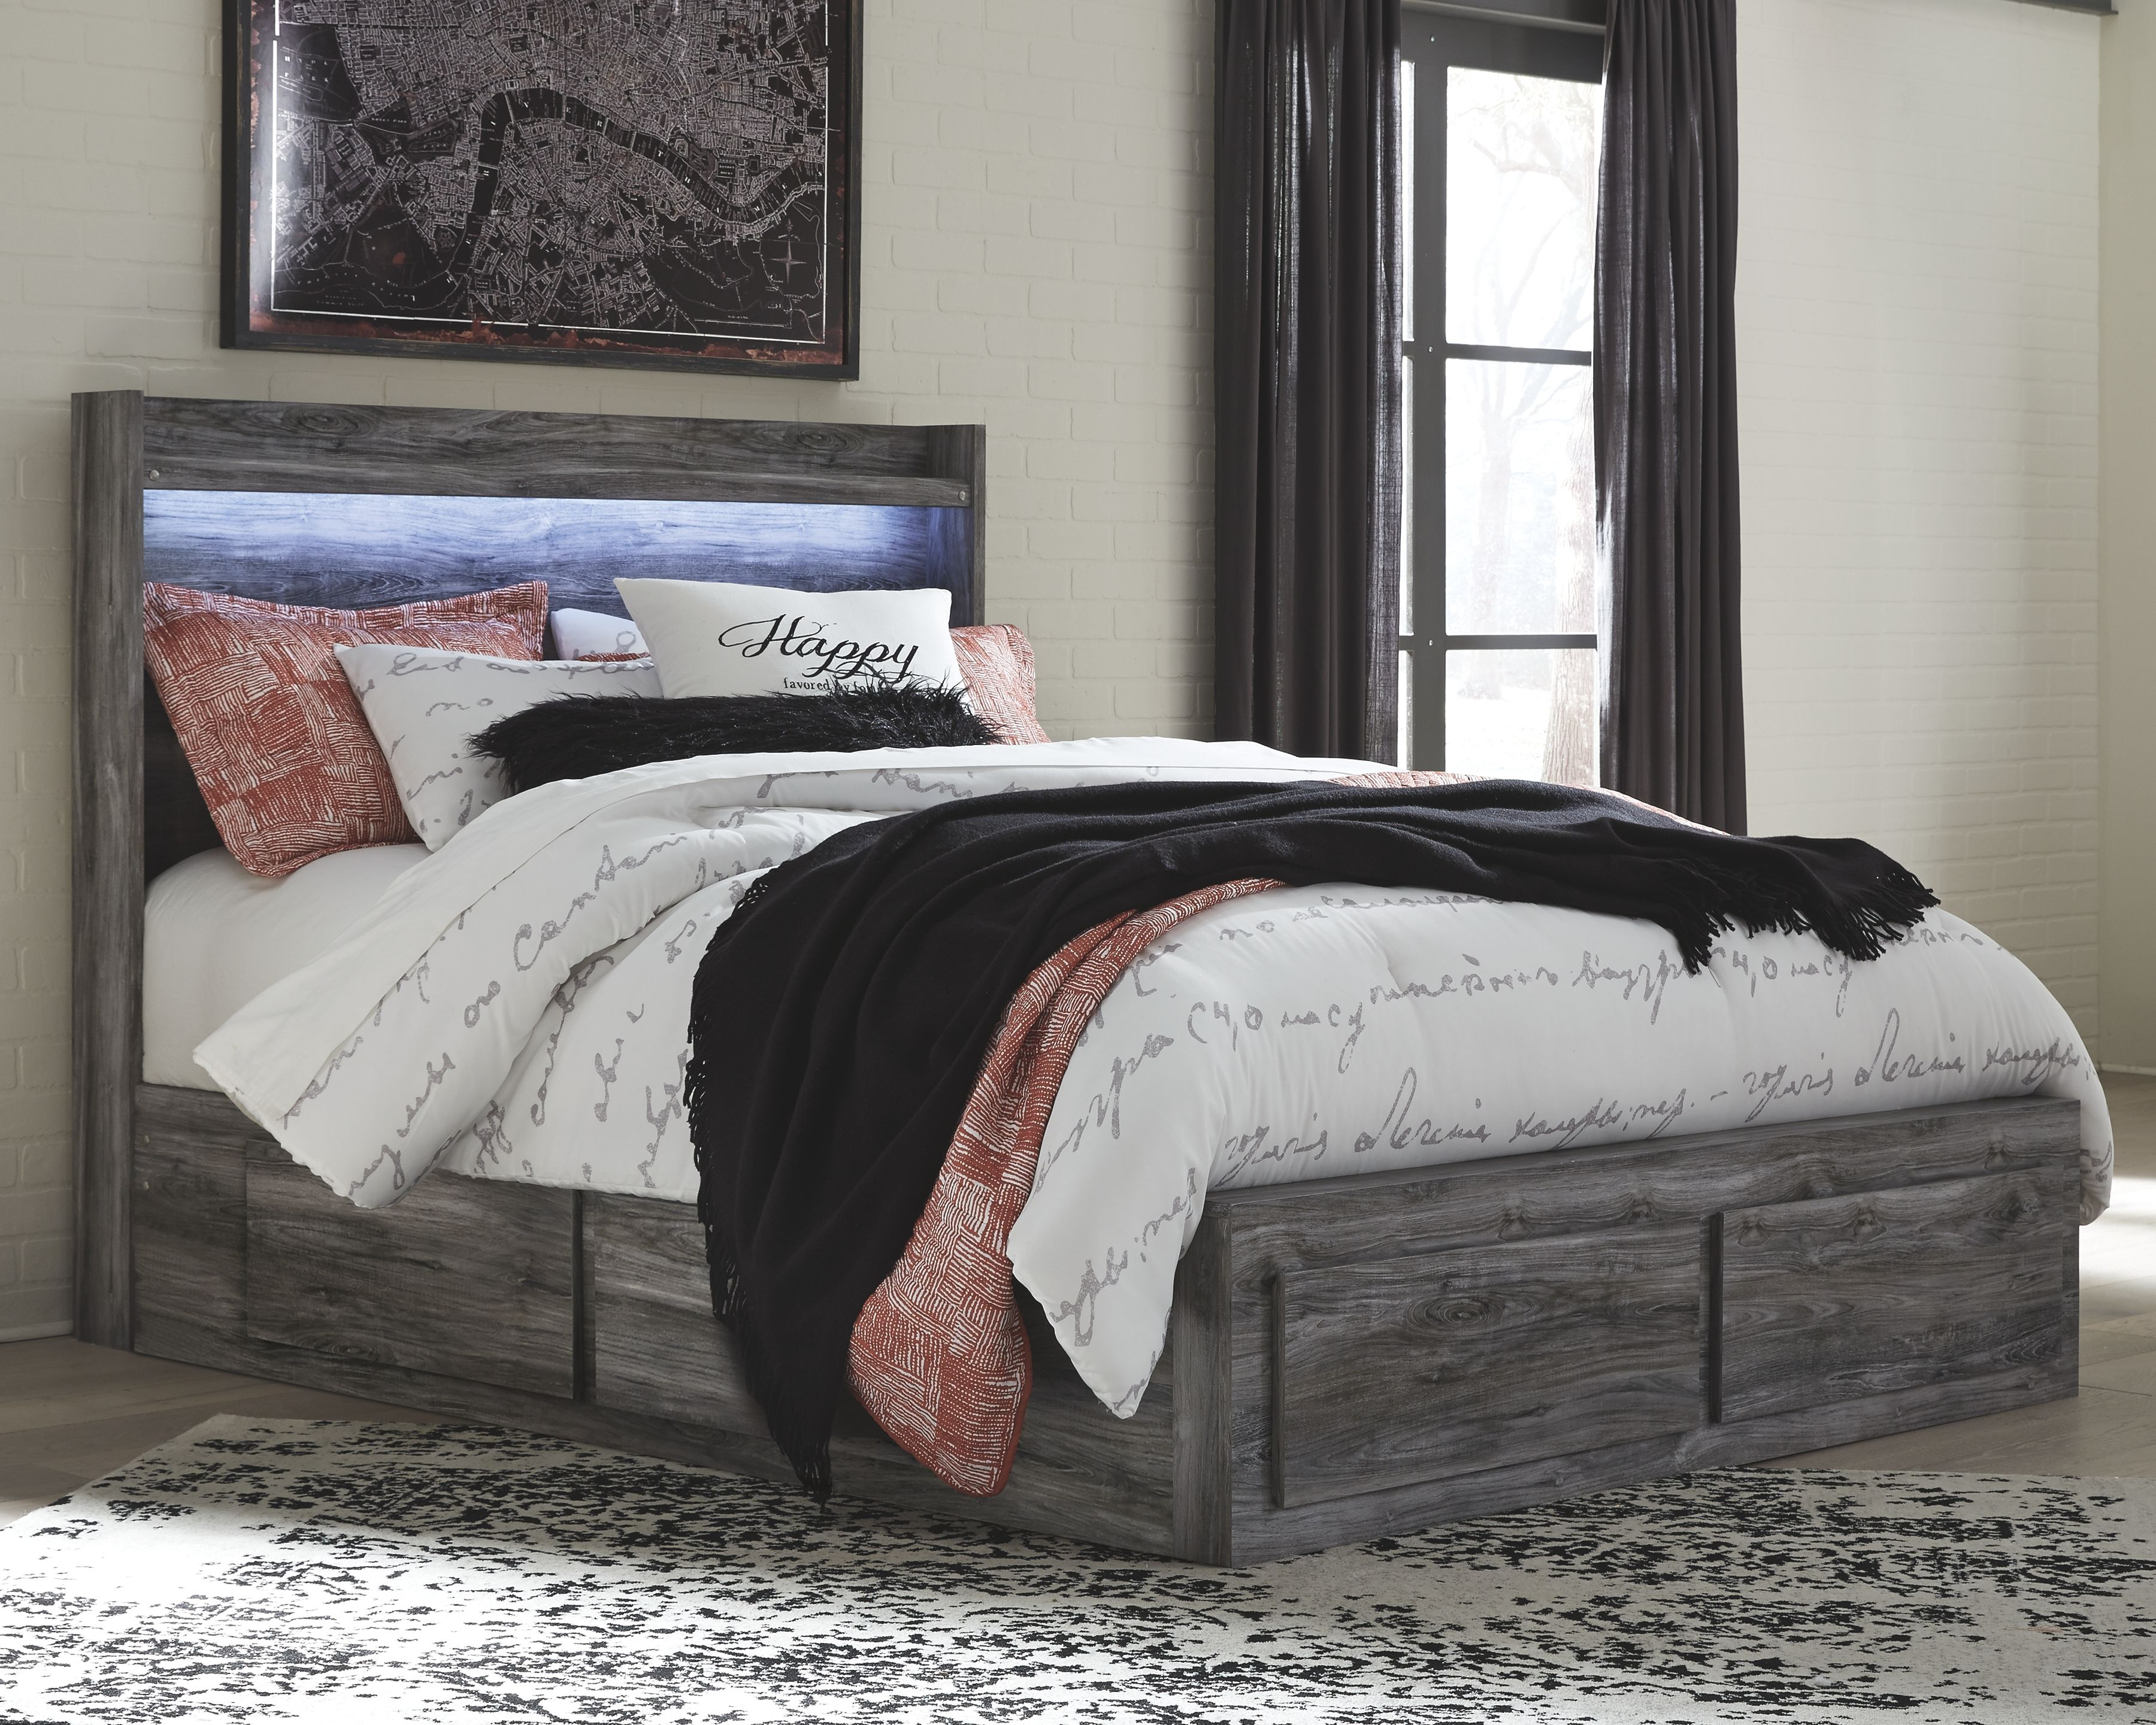 Baystorm Queen Panel Bed with 4 Storage Drawers King